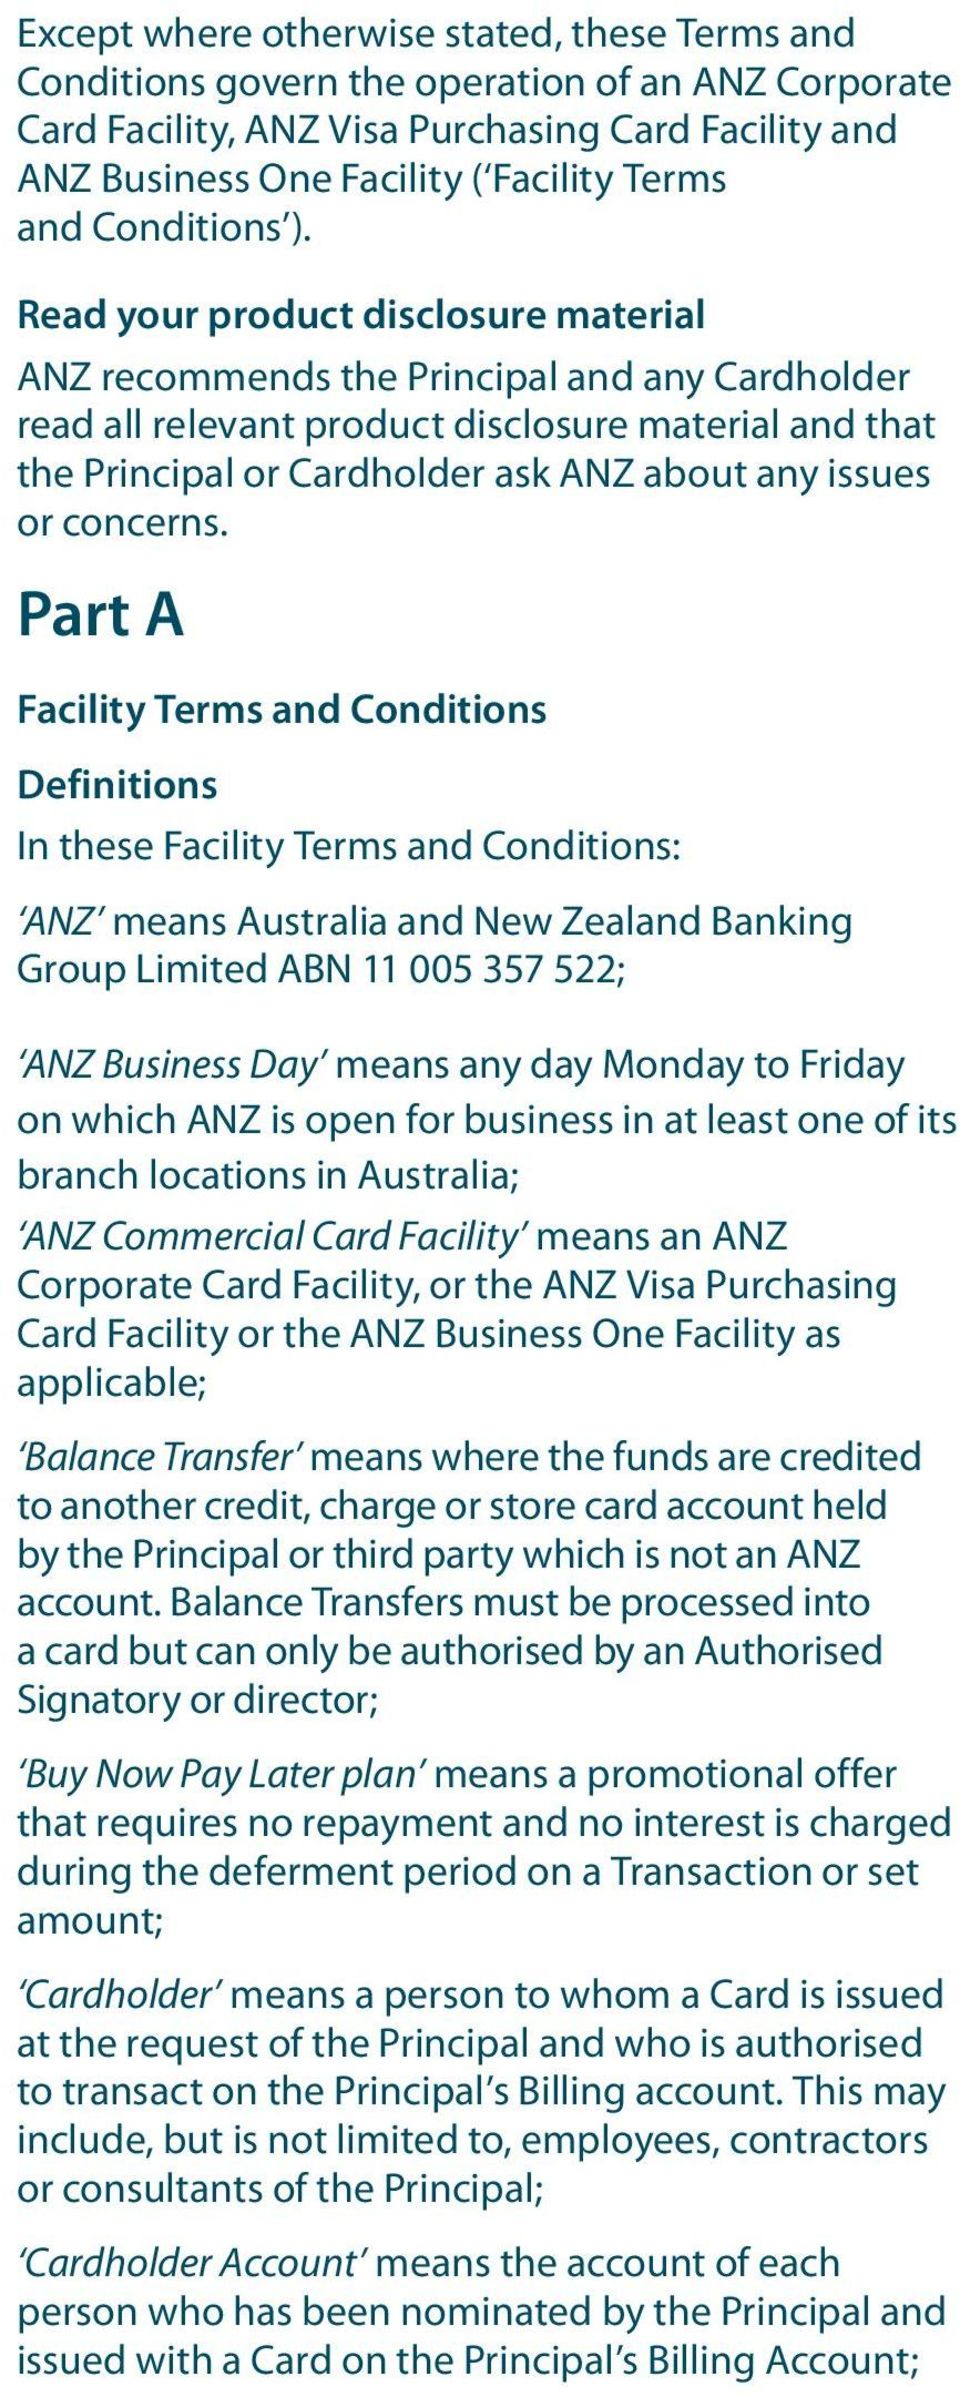 Read your product disclosure material ANZ recommends the Principal and any Cardholder read all relevant product disclosure material and that the Principal or Cardholder ask ANZ about any issues or